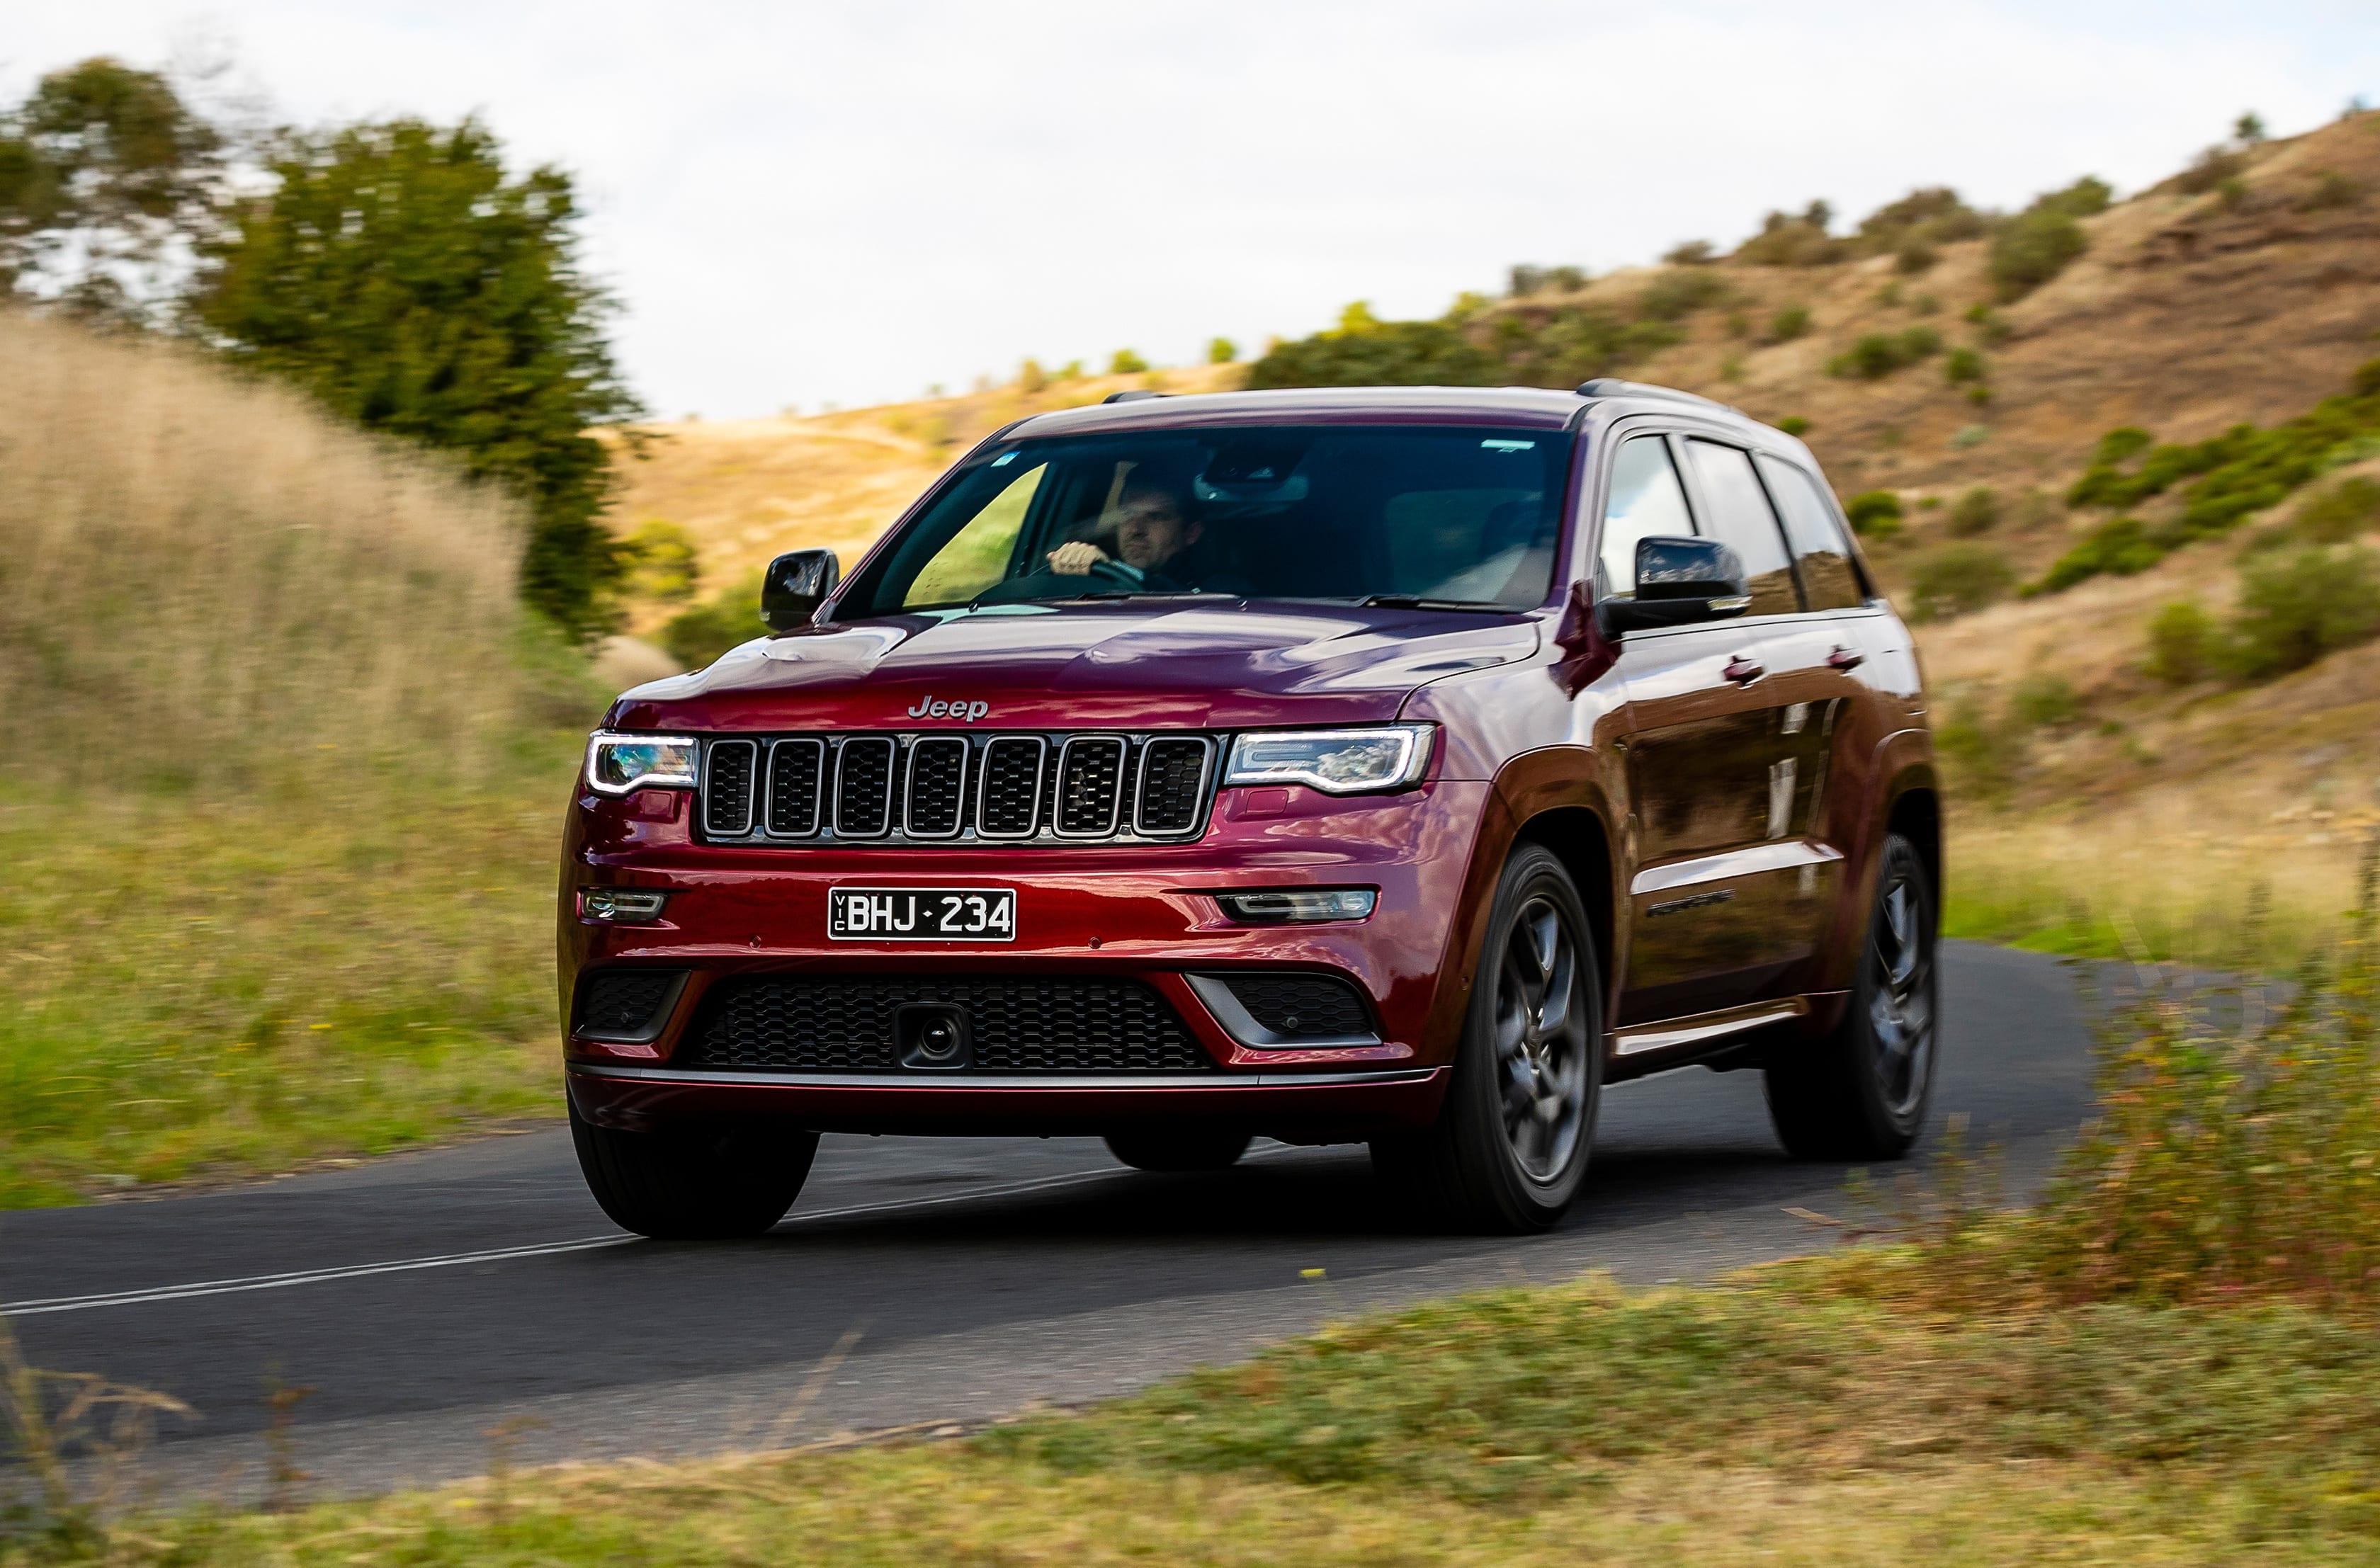 2021 Jeep Grand Cherokee S-Limited long-term review